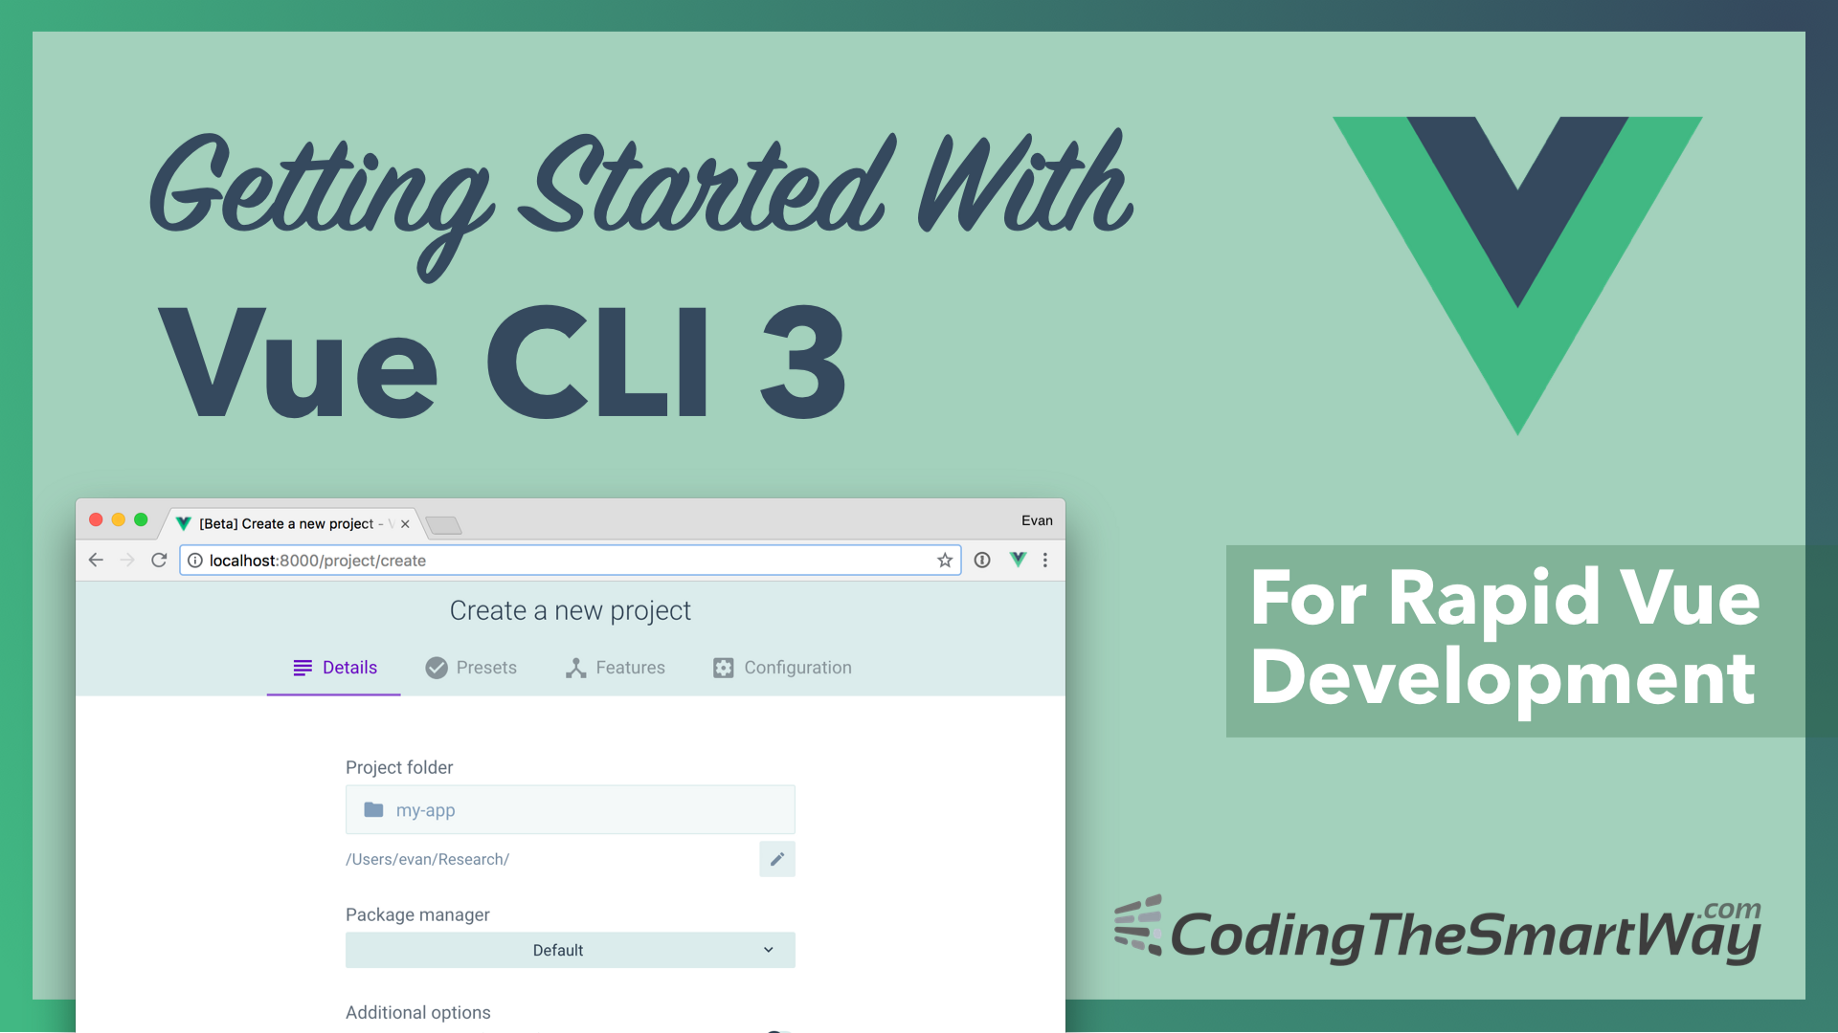 Getting Started With Vue CLI 3 - CodingTheSmartWay com Blog - Medium